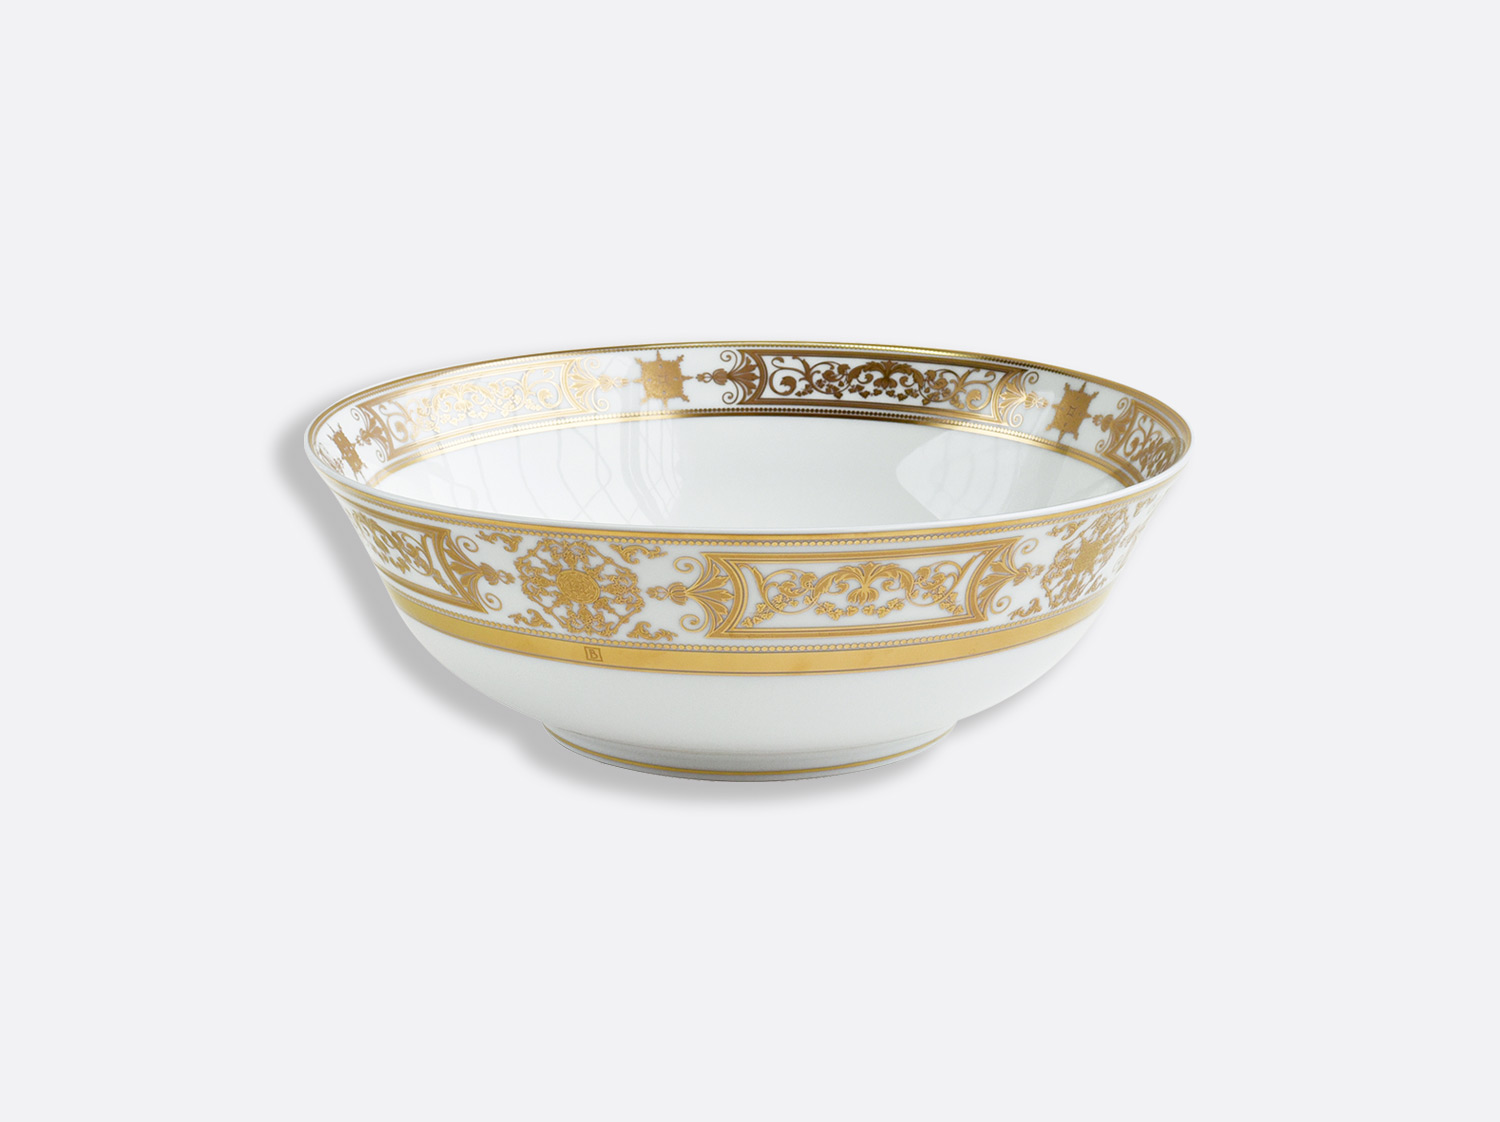 Saladier 25 cm 1,7 L en porcelaine de la collection Aux Rois Or Bernardaud